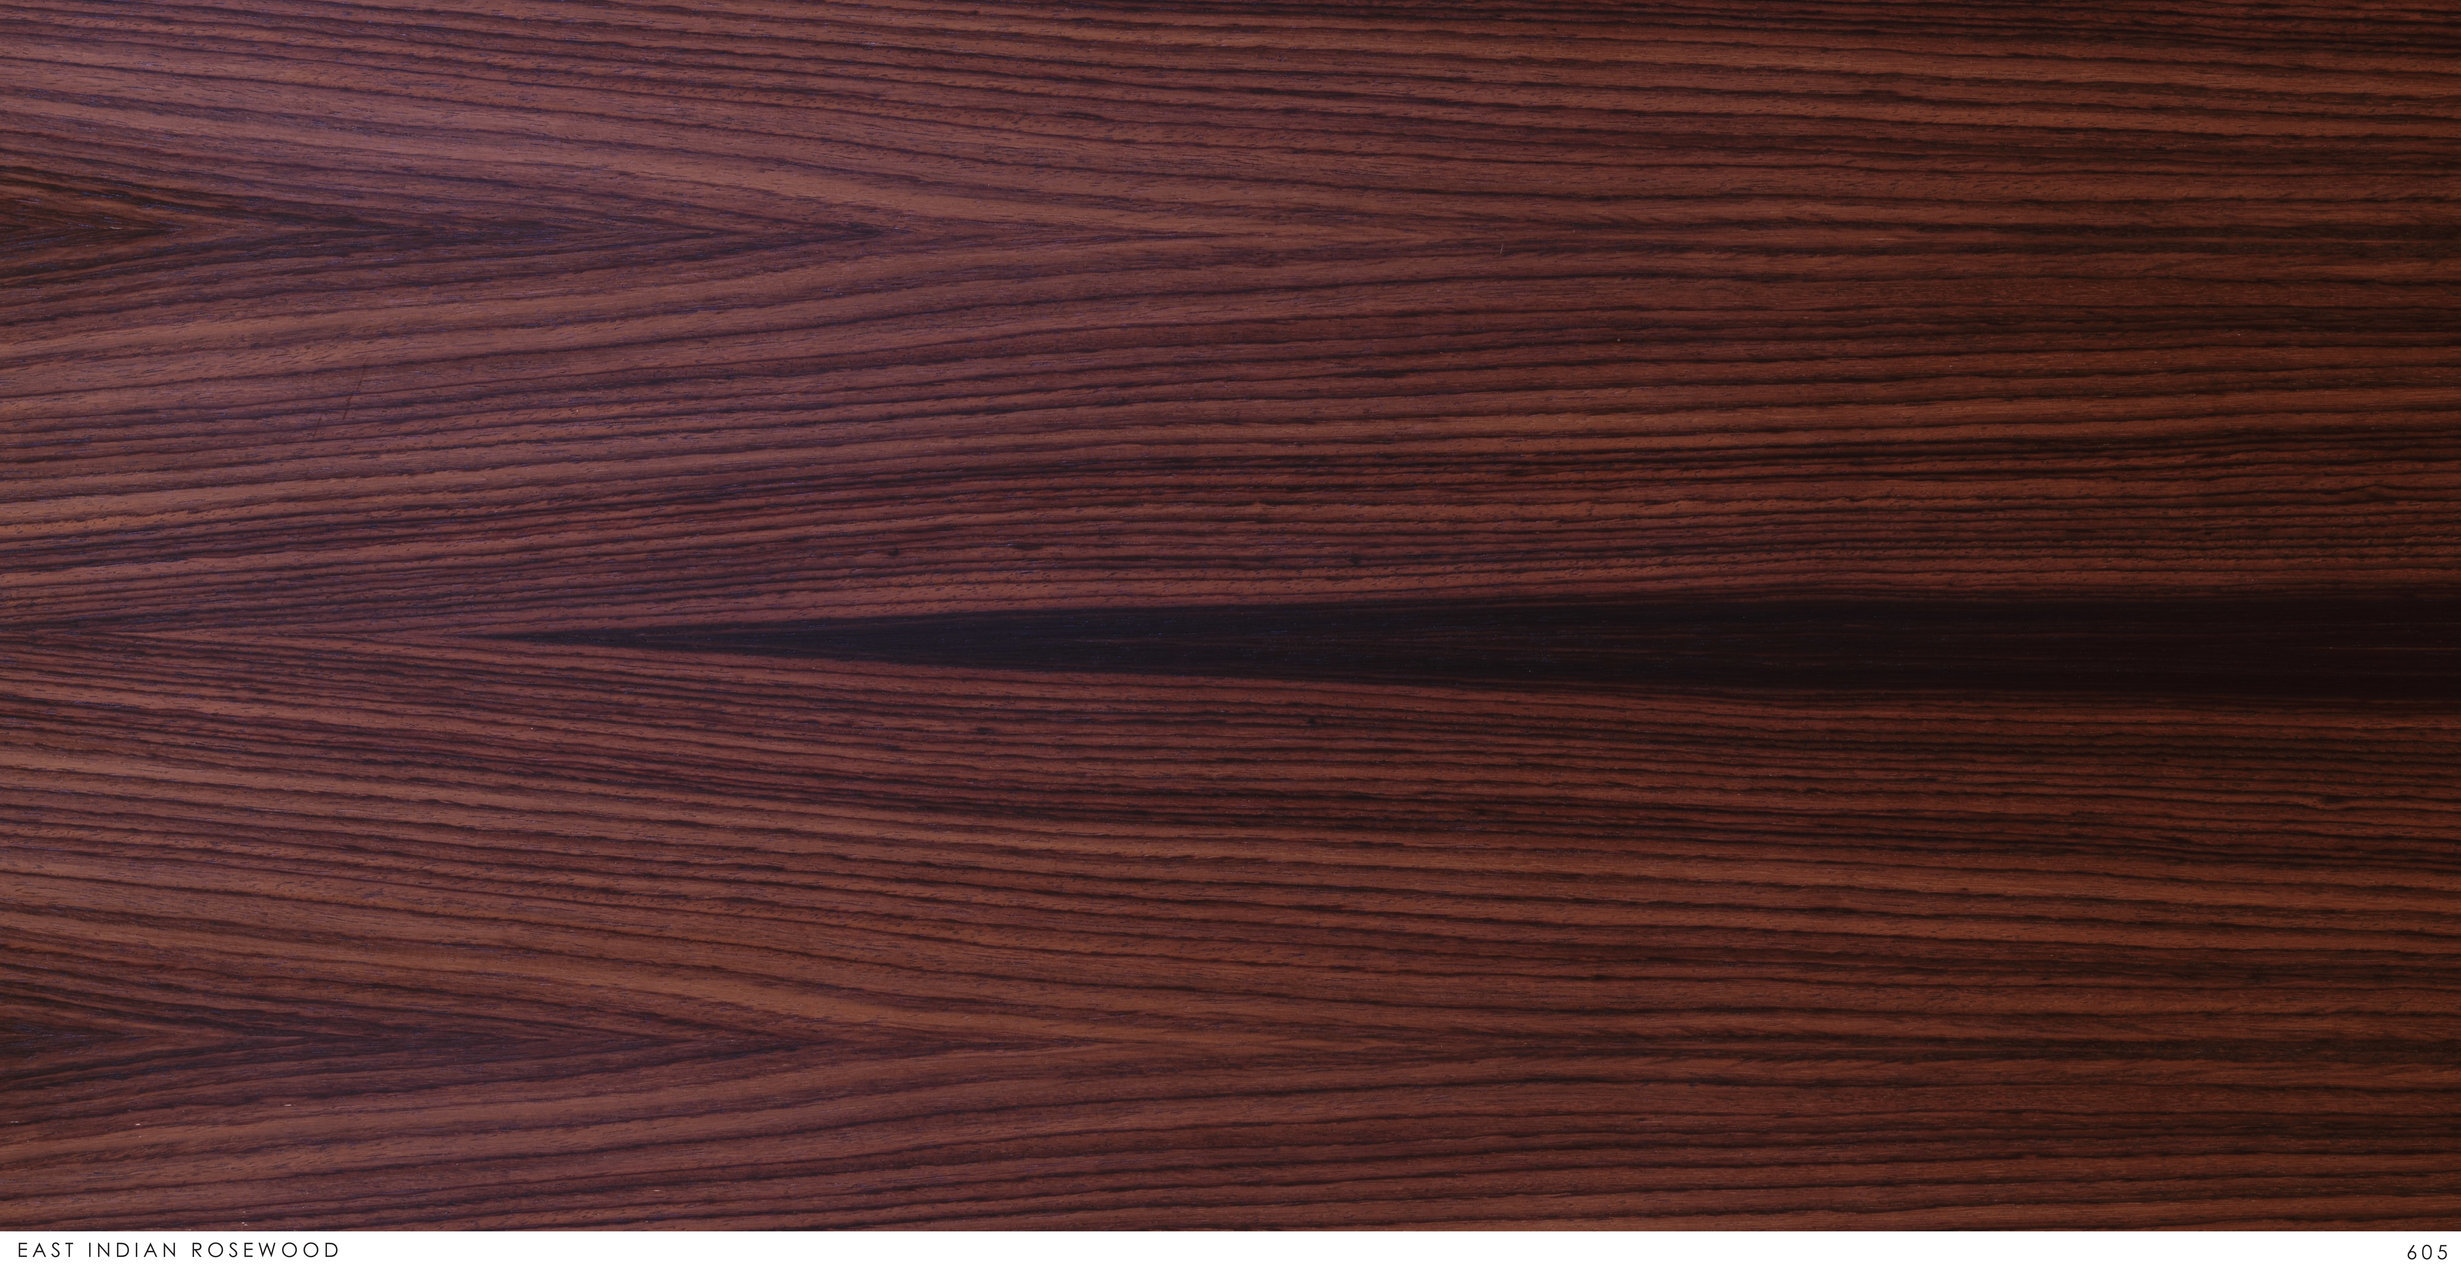 EASH INDIAN ROSEWOOD 605.jpg